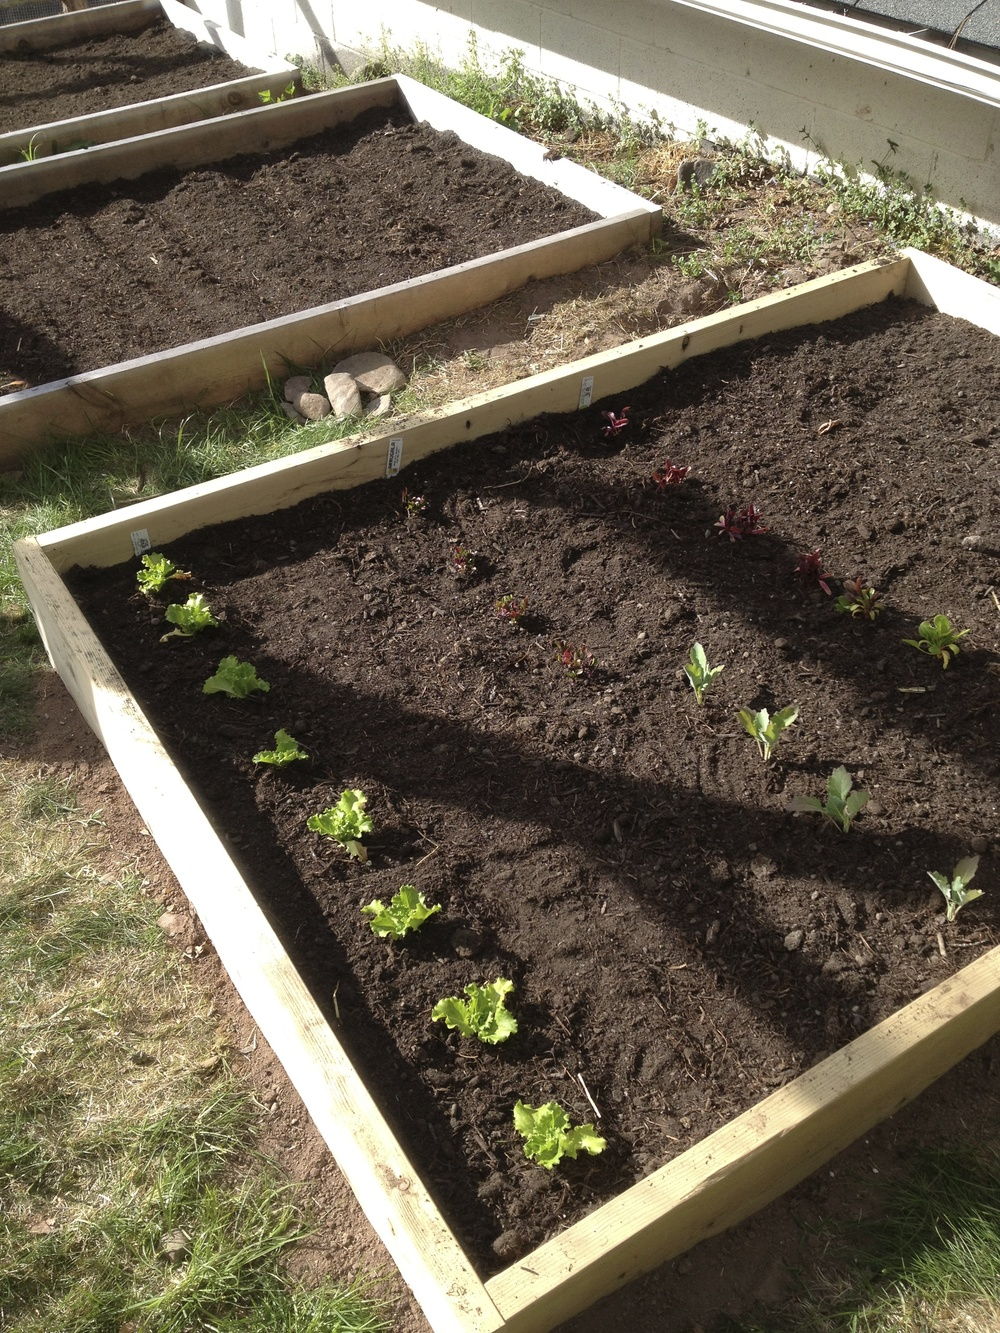 Here's the baby greens bed - just wait until you see what it looks like now! (See first image in this post.)